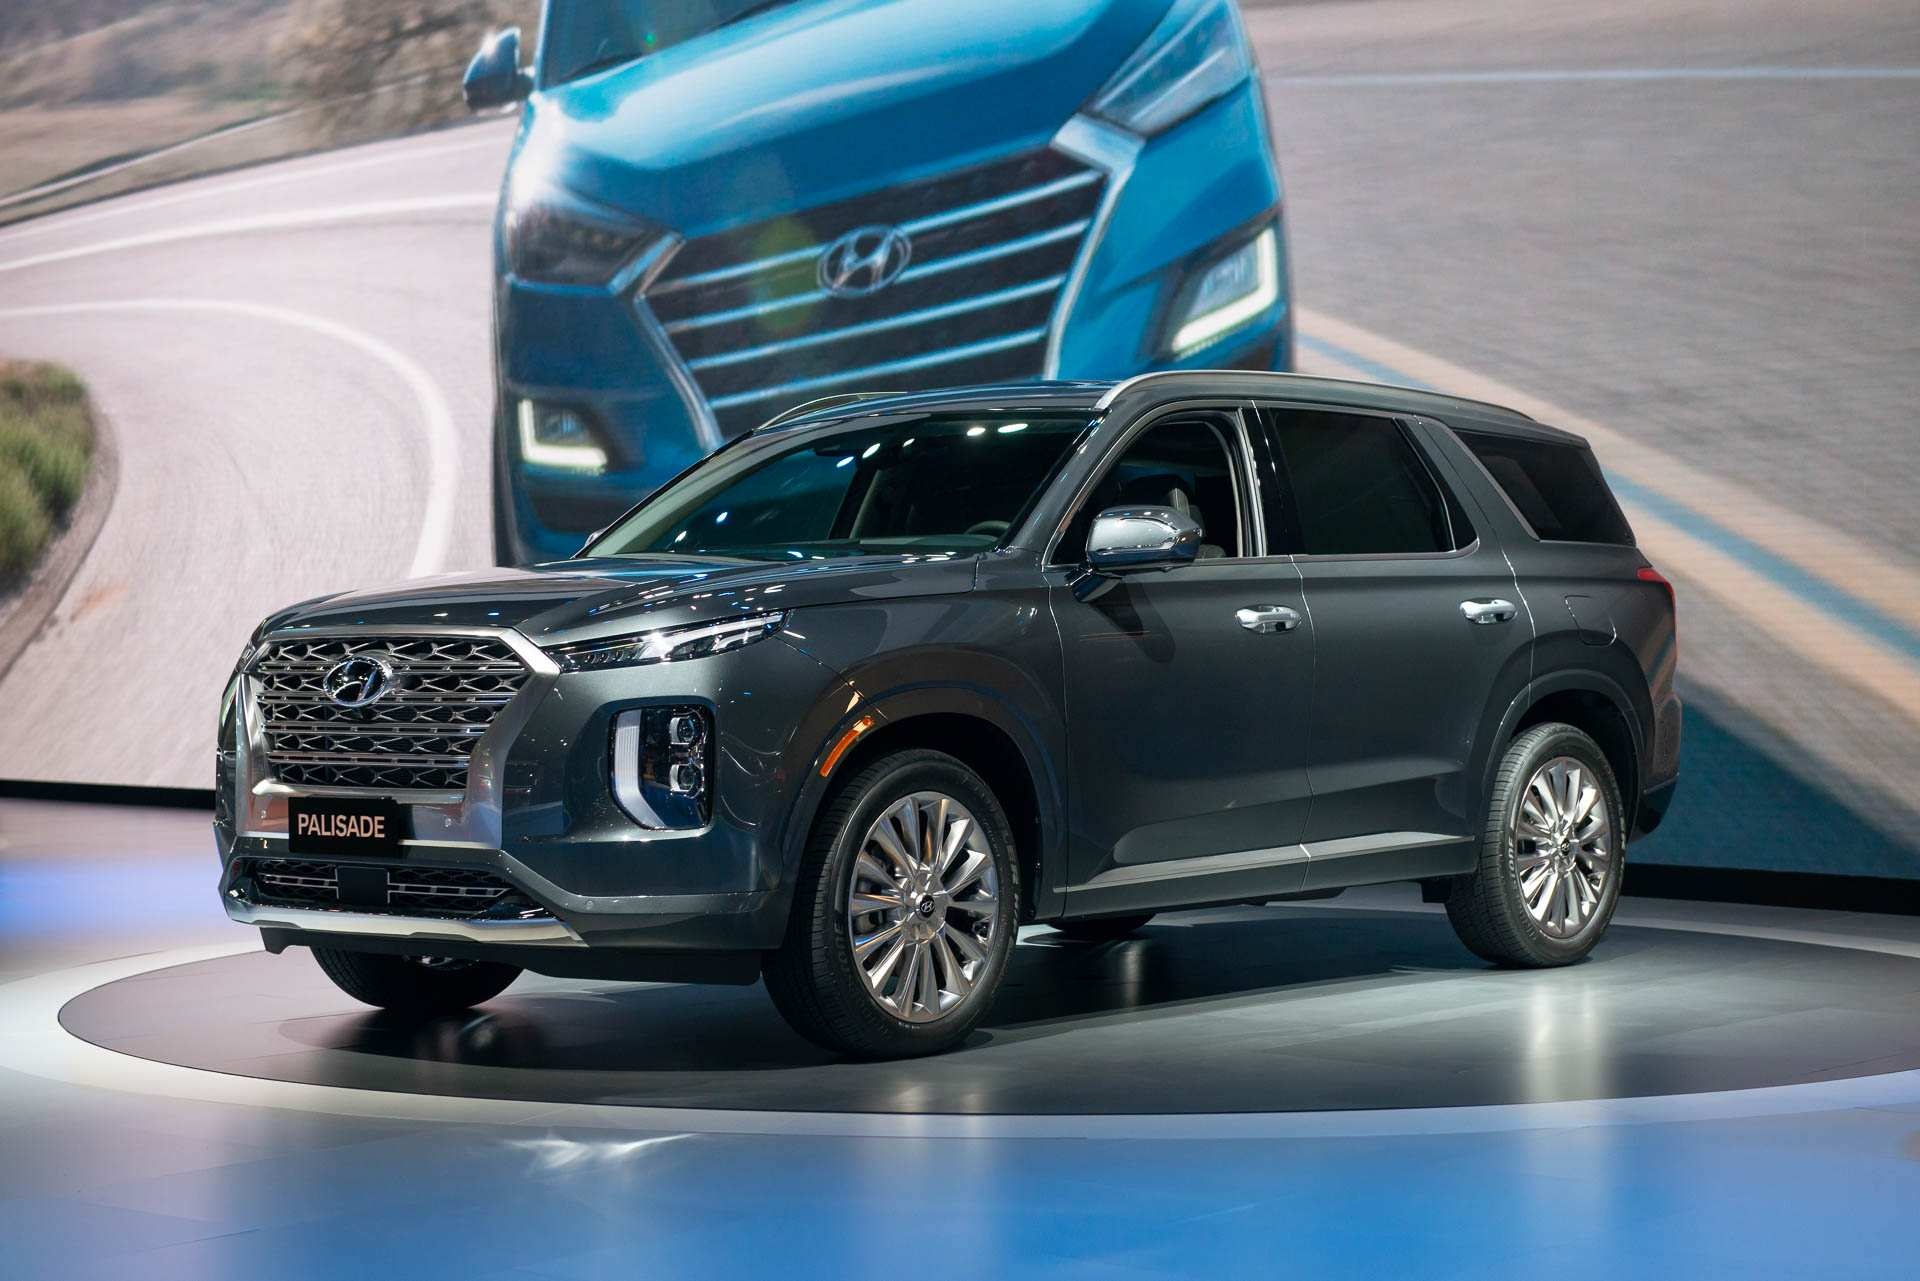 64 The Best How Much Is The 2020 Hyundai Palisade Exterior And Interior